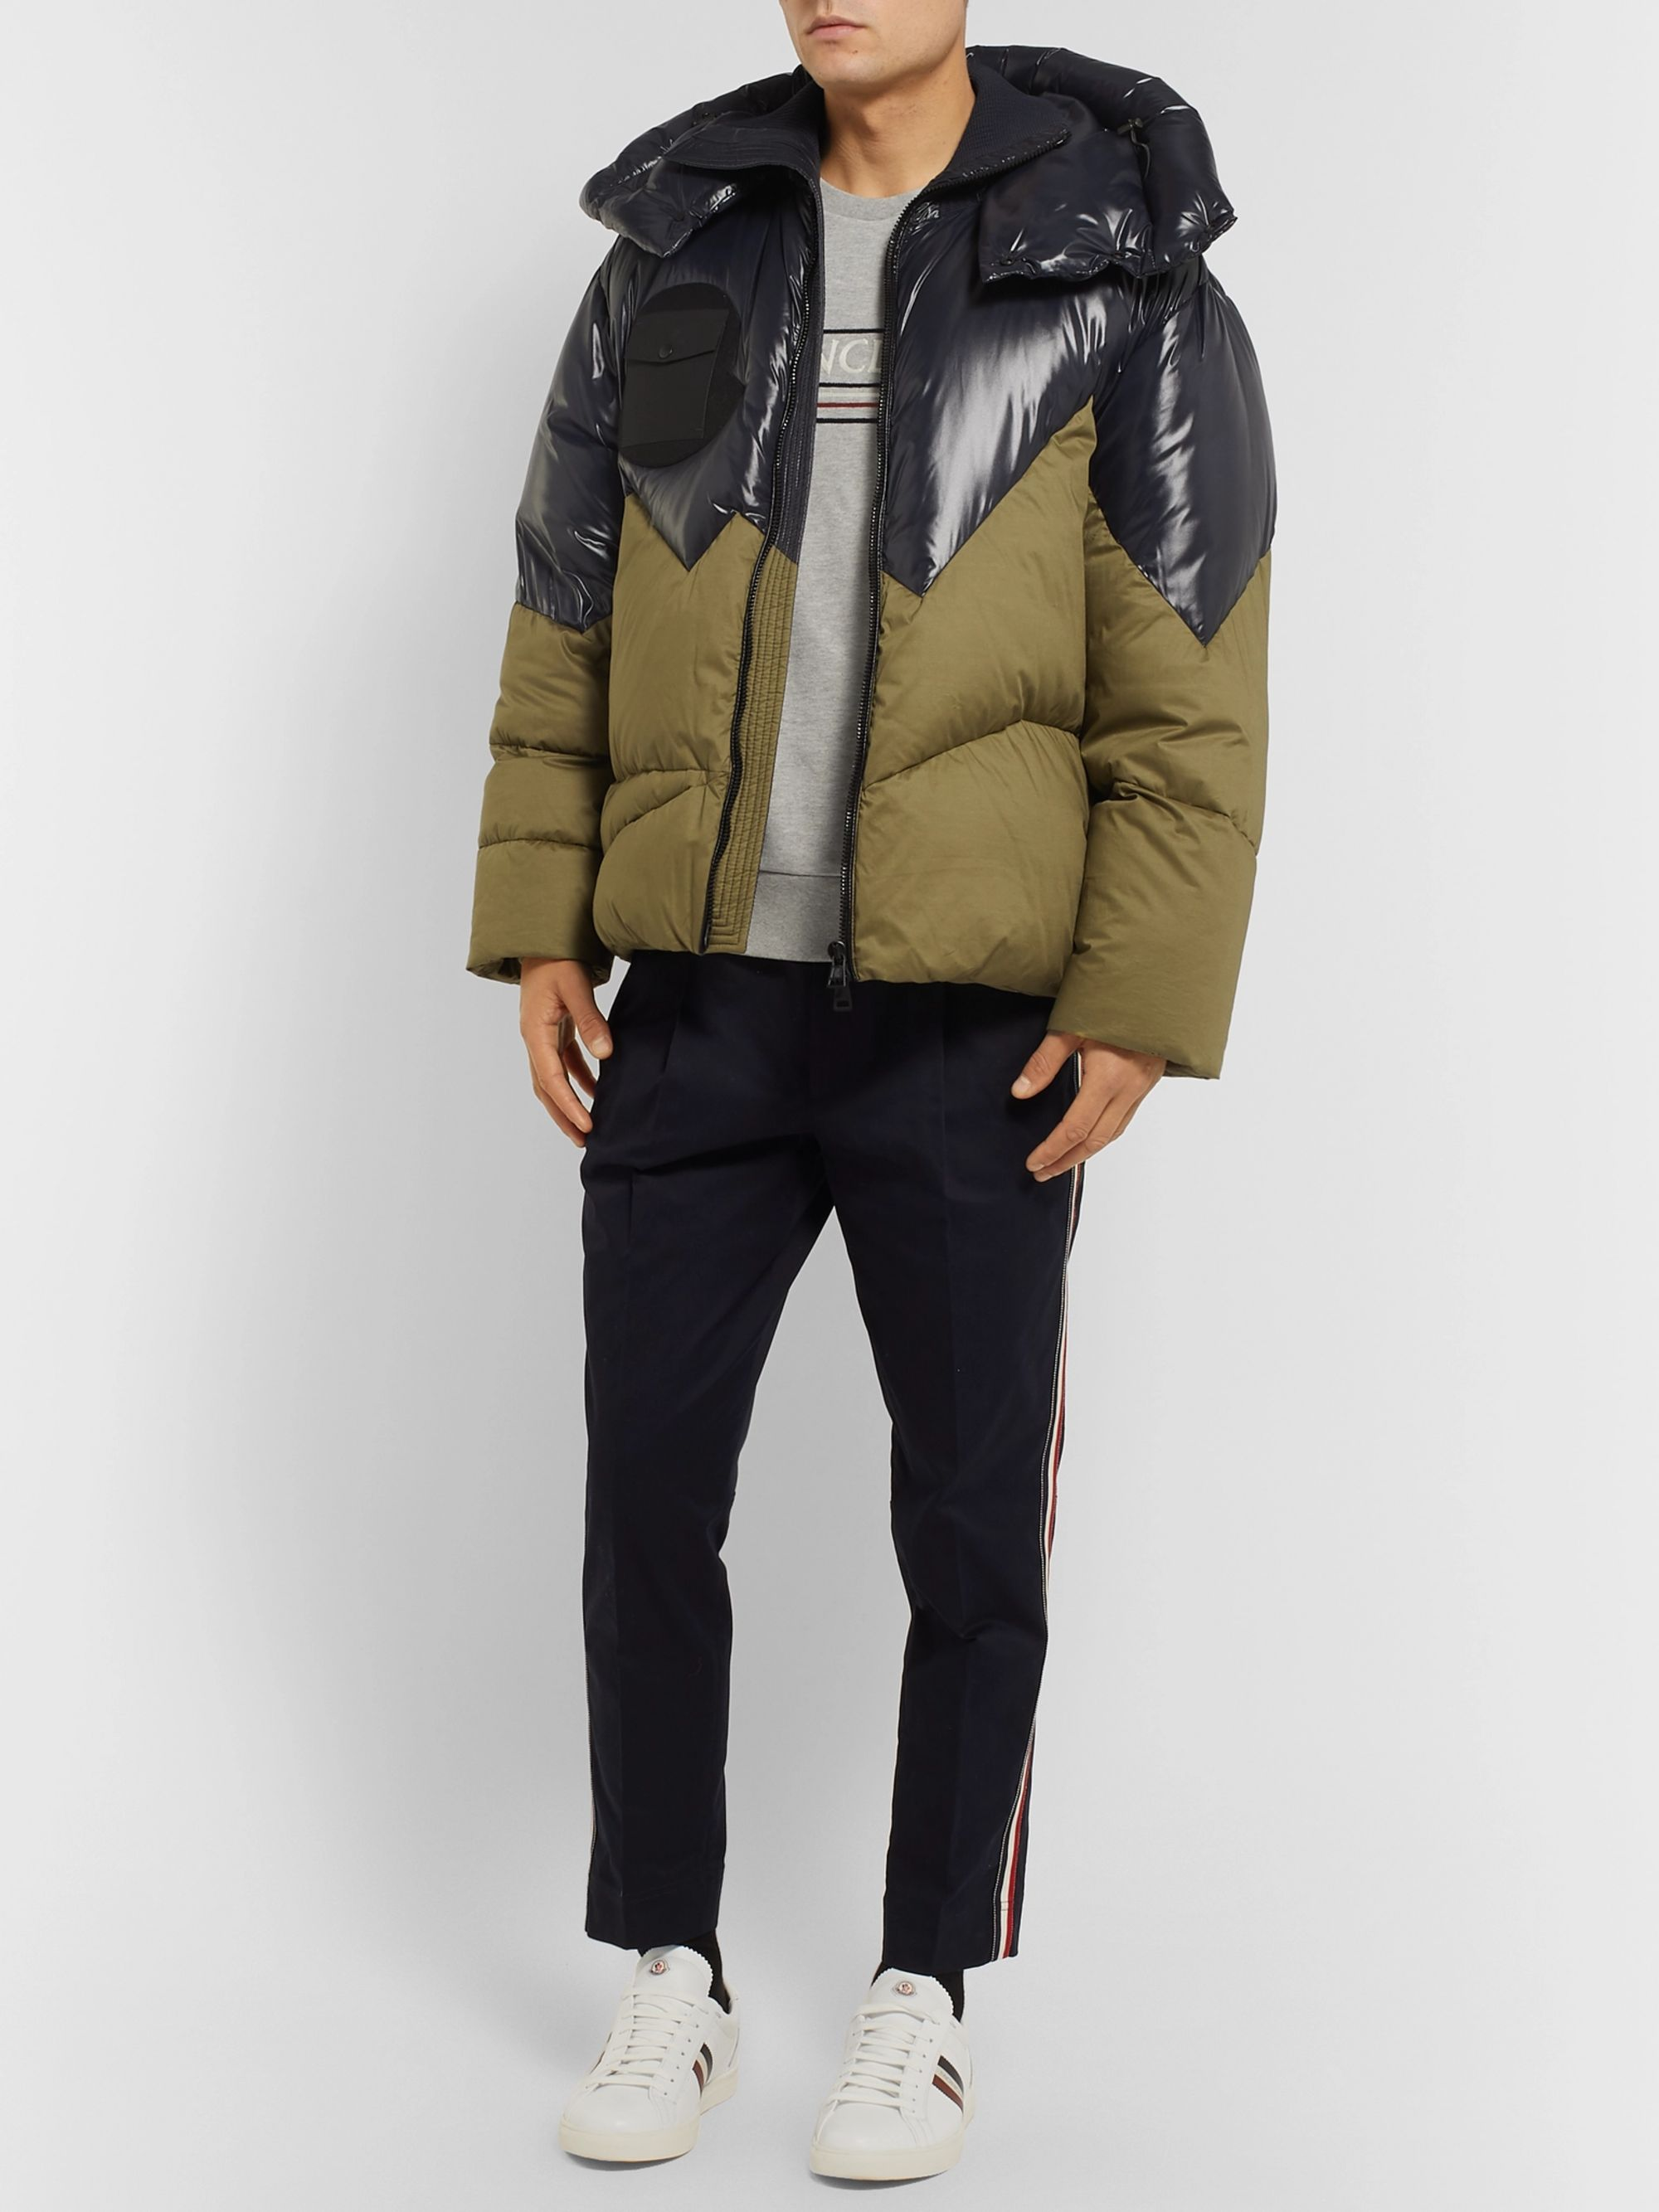 Moncler Genius 2 Moncler 1952 Two-Tone Quilted Shell Hooded Down Jacket